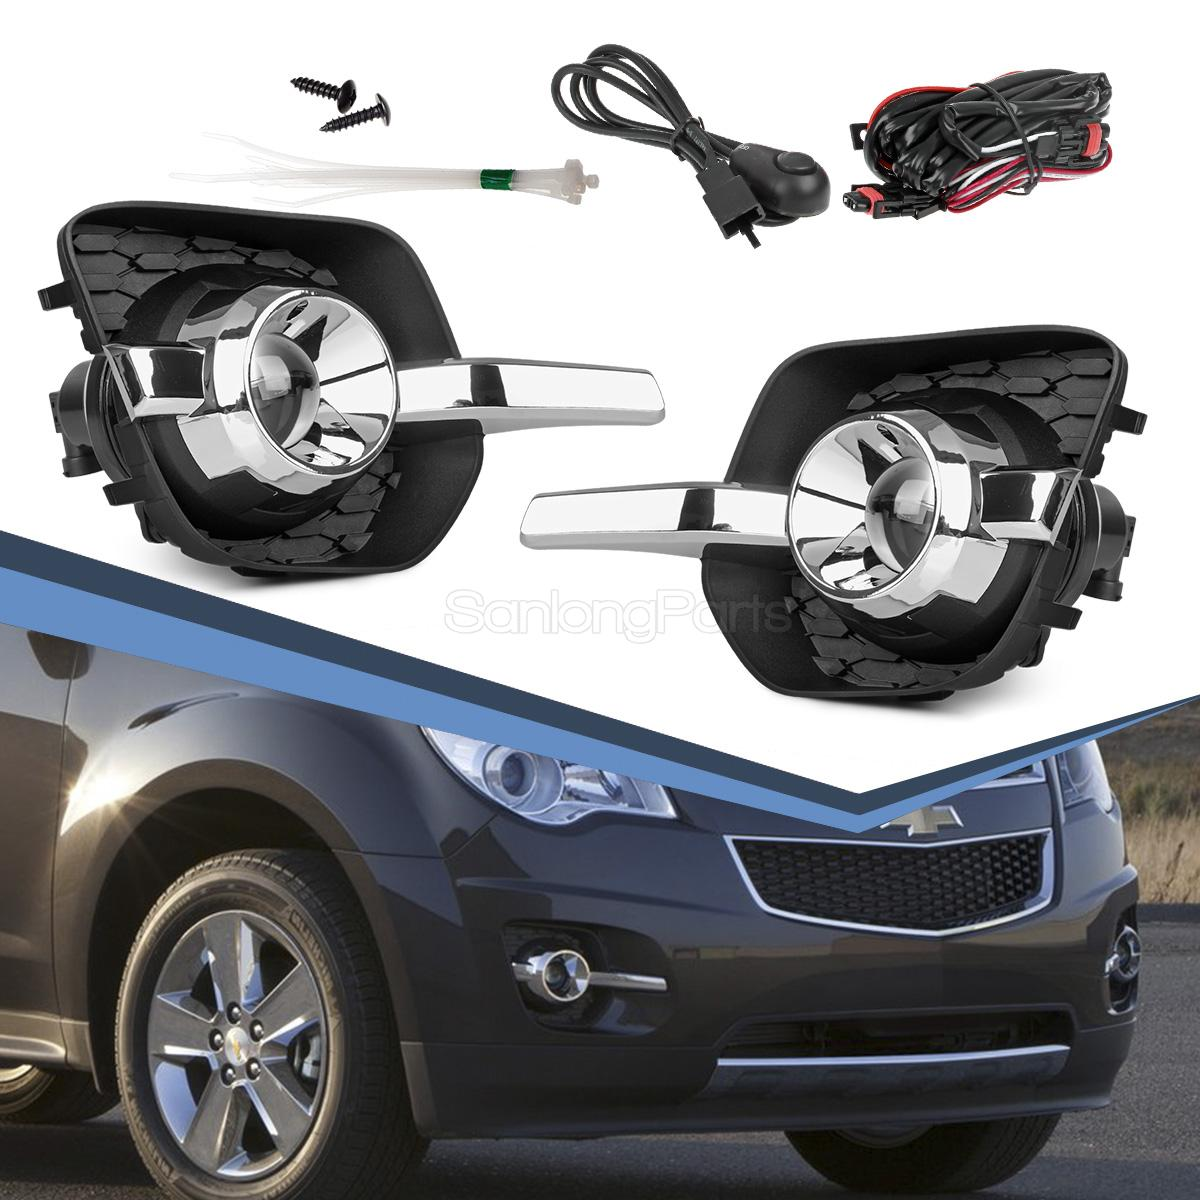 Honda Recon Aftermarket Parts Chevy Equinox Fog Lights Oem Ebay | Auto Review, Price, Release date ...